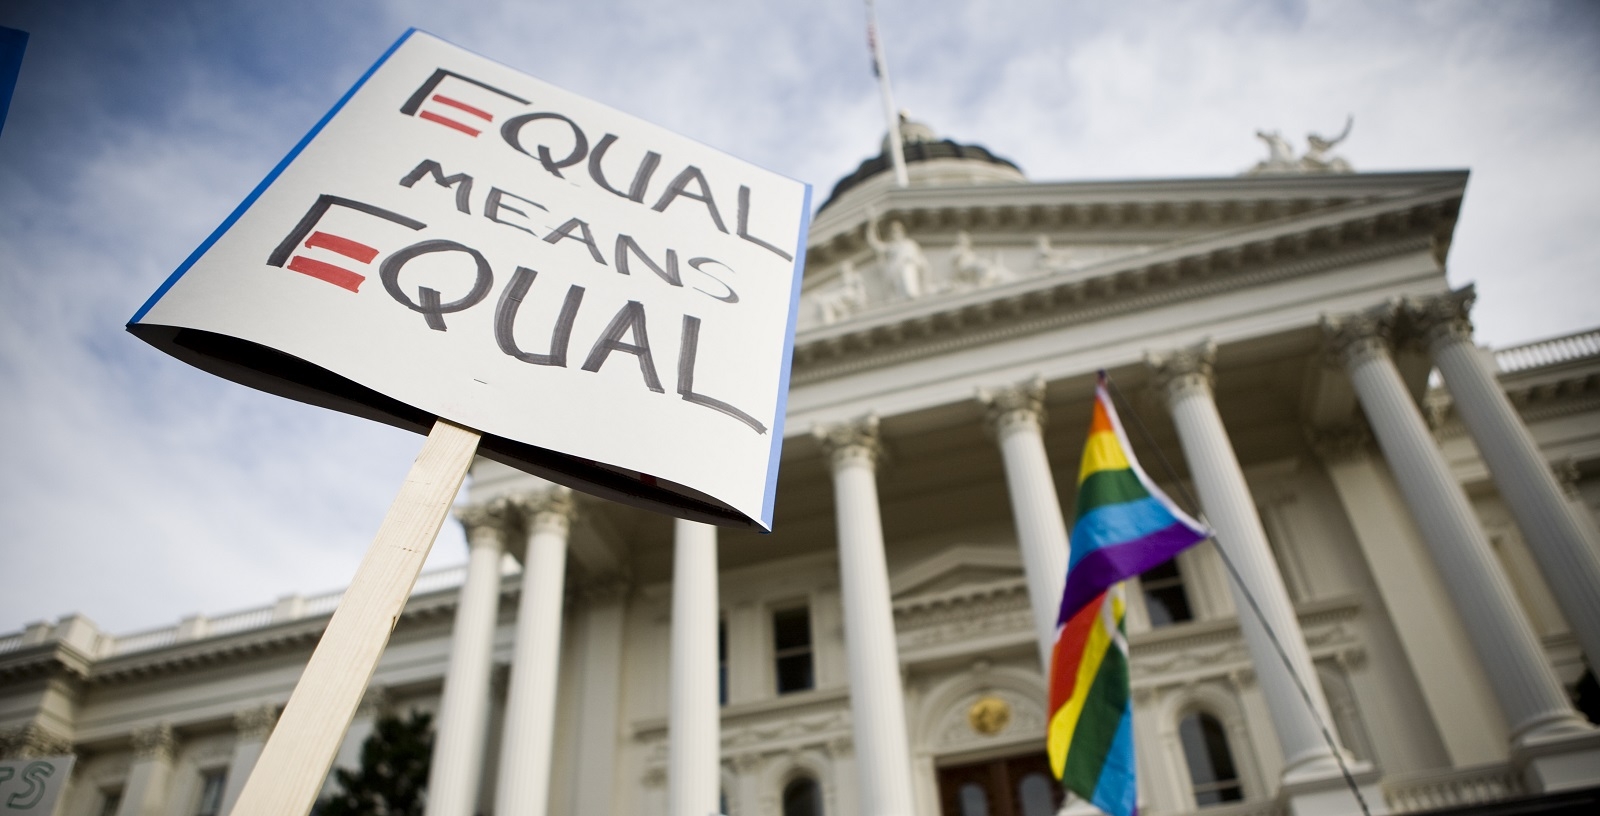 State Equality Index: Supporters rally on the steps of the State Capitol November 22, 2008 in Sacramento, California.